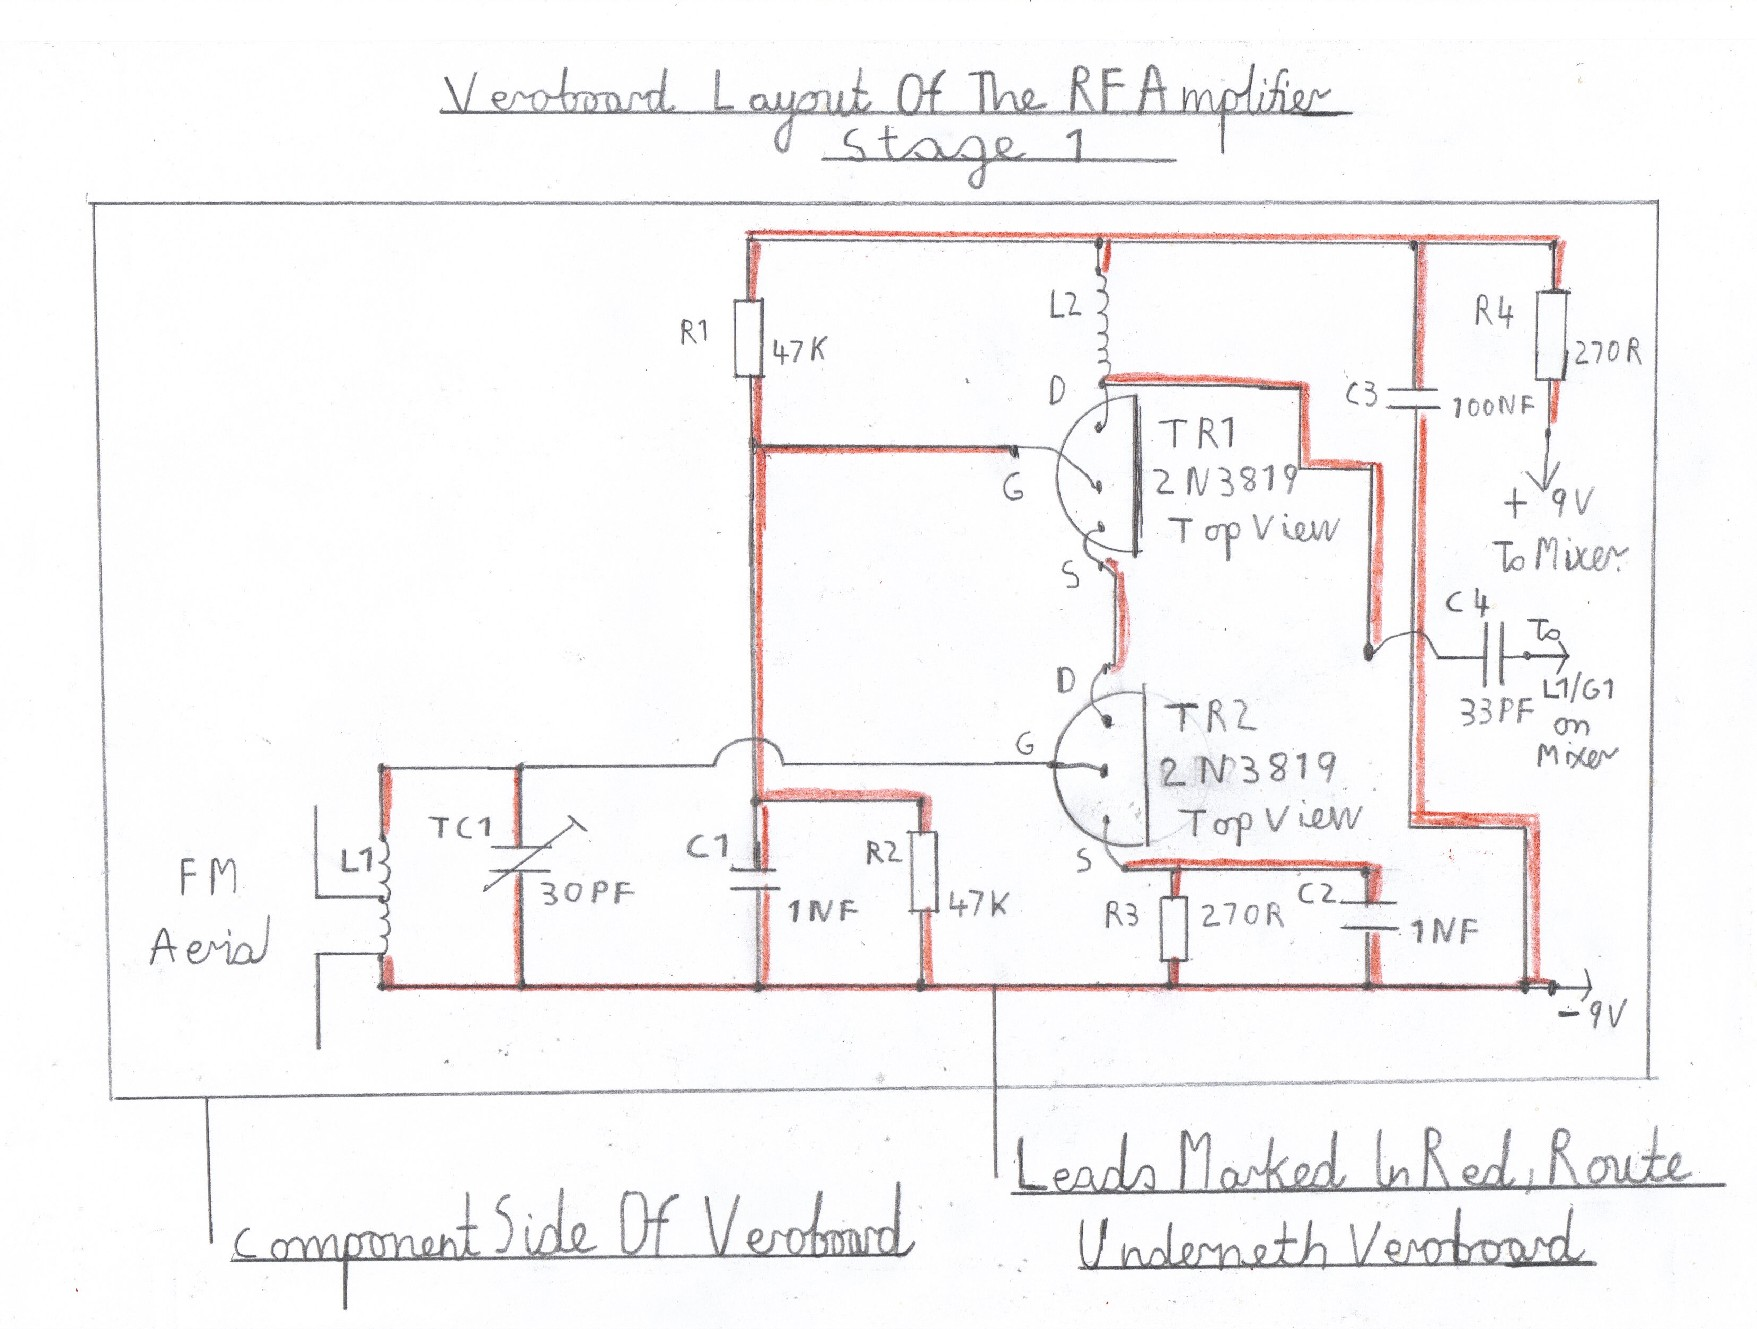 Transistor Fm Superhet Receiver One Line Wiring Diagram Kitchen Of The Rf Amplifier This Stage Is Wired And Tested After Vhf Known To Work Ok Now Completes Constuction